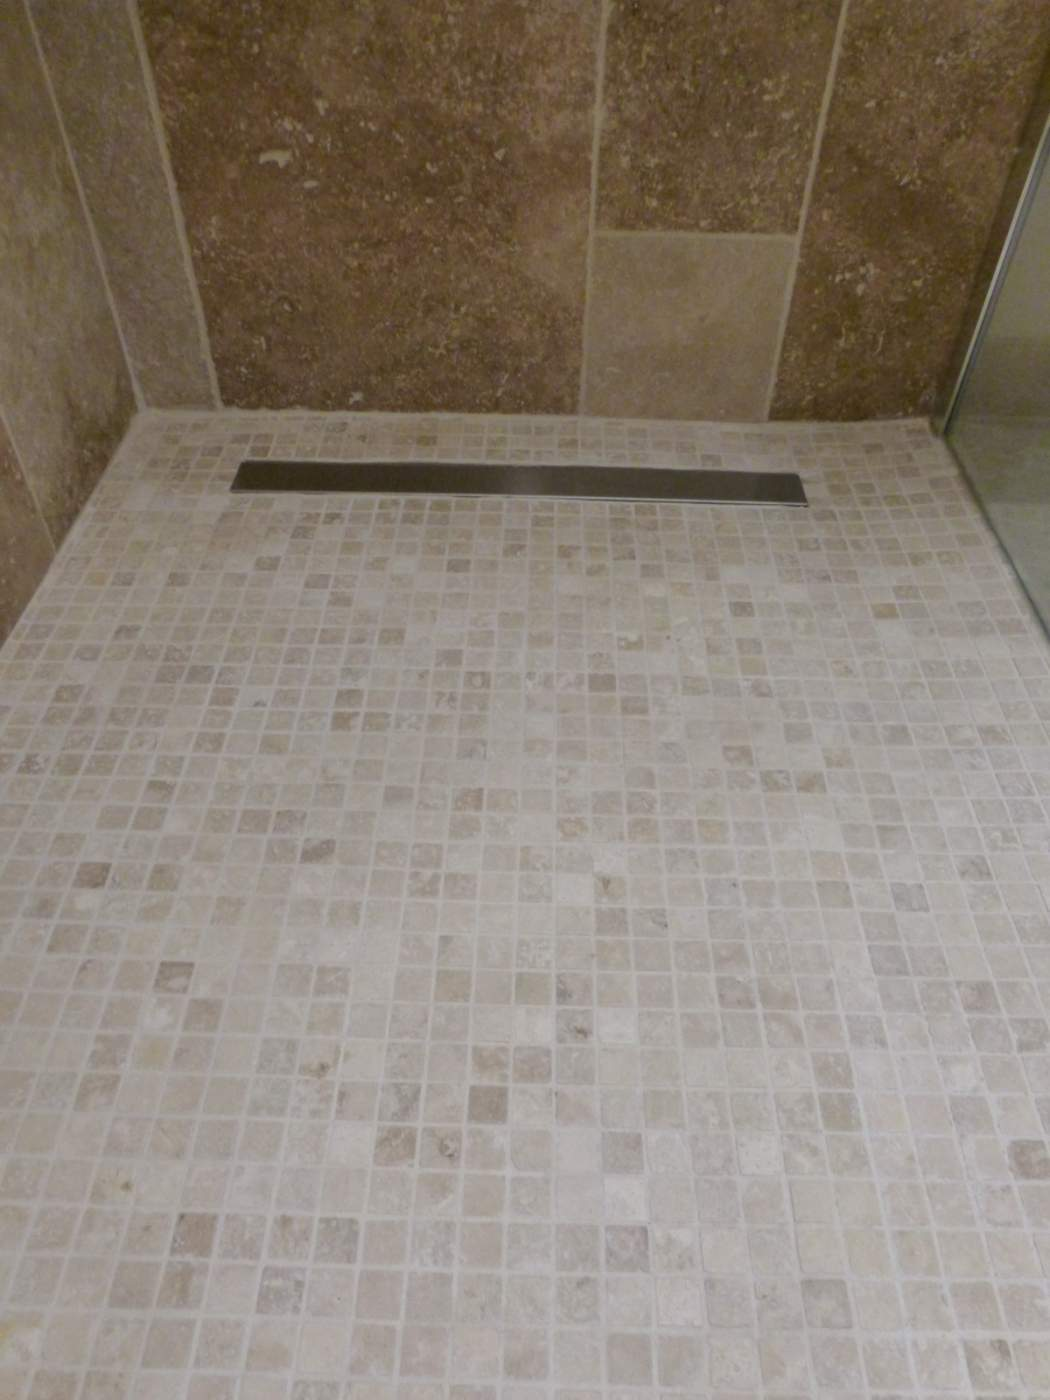 Carrelage salle de bain travertin for Salle bain travertin